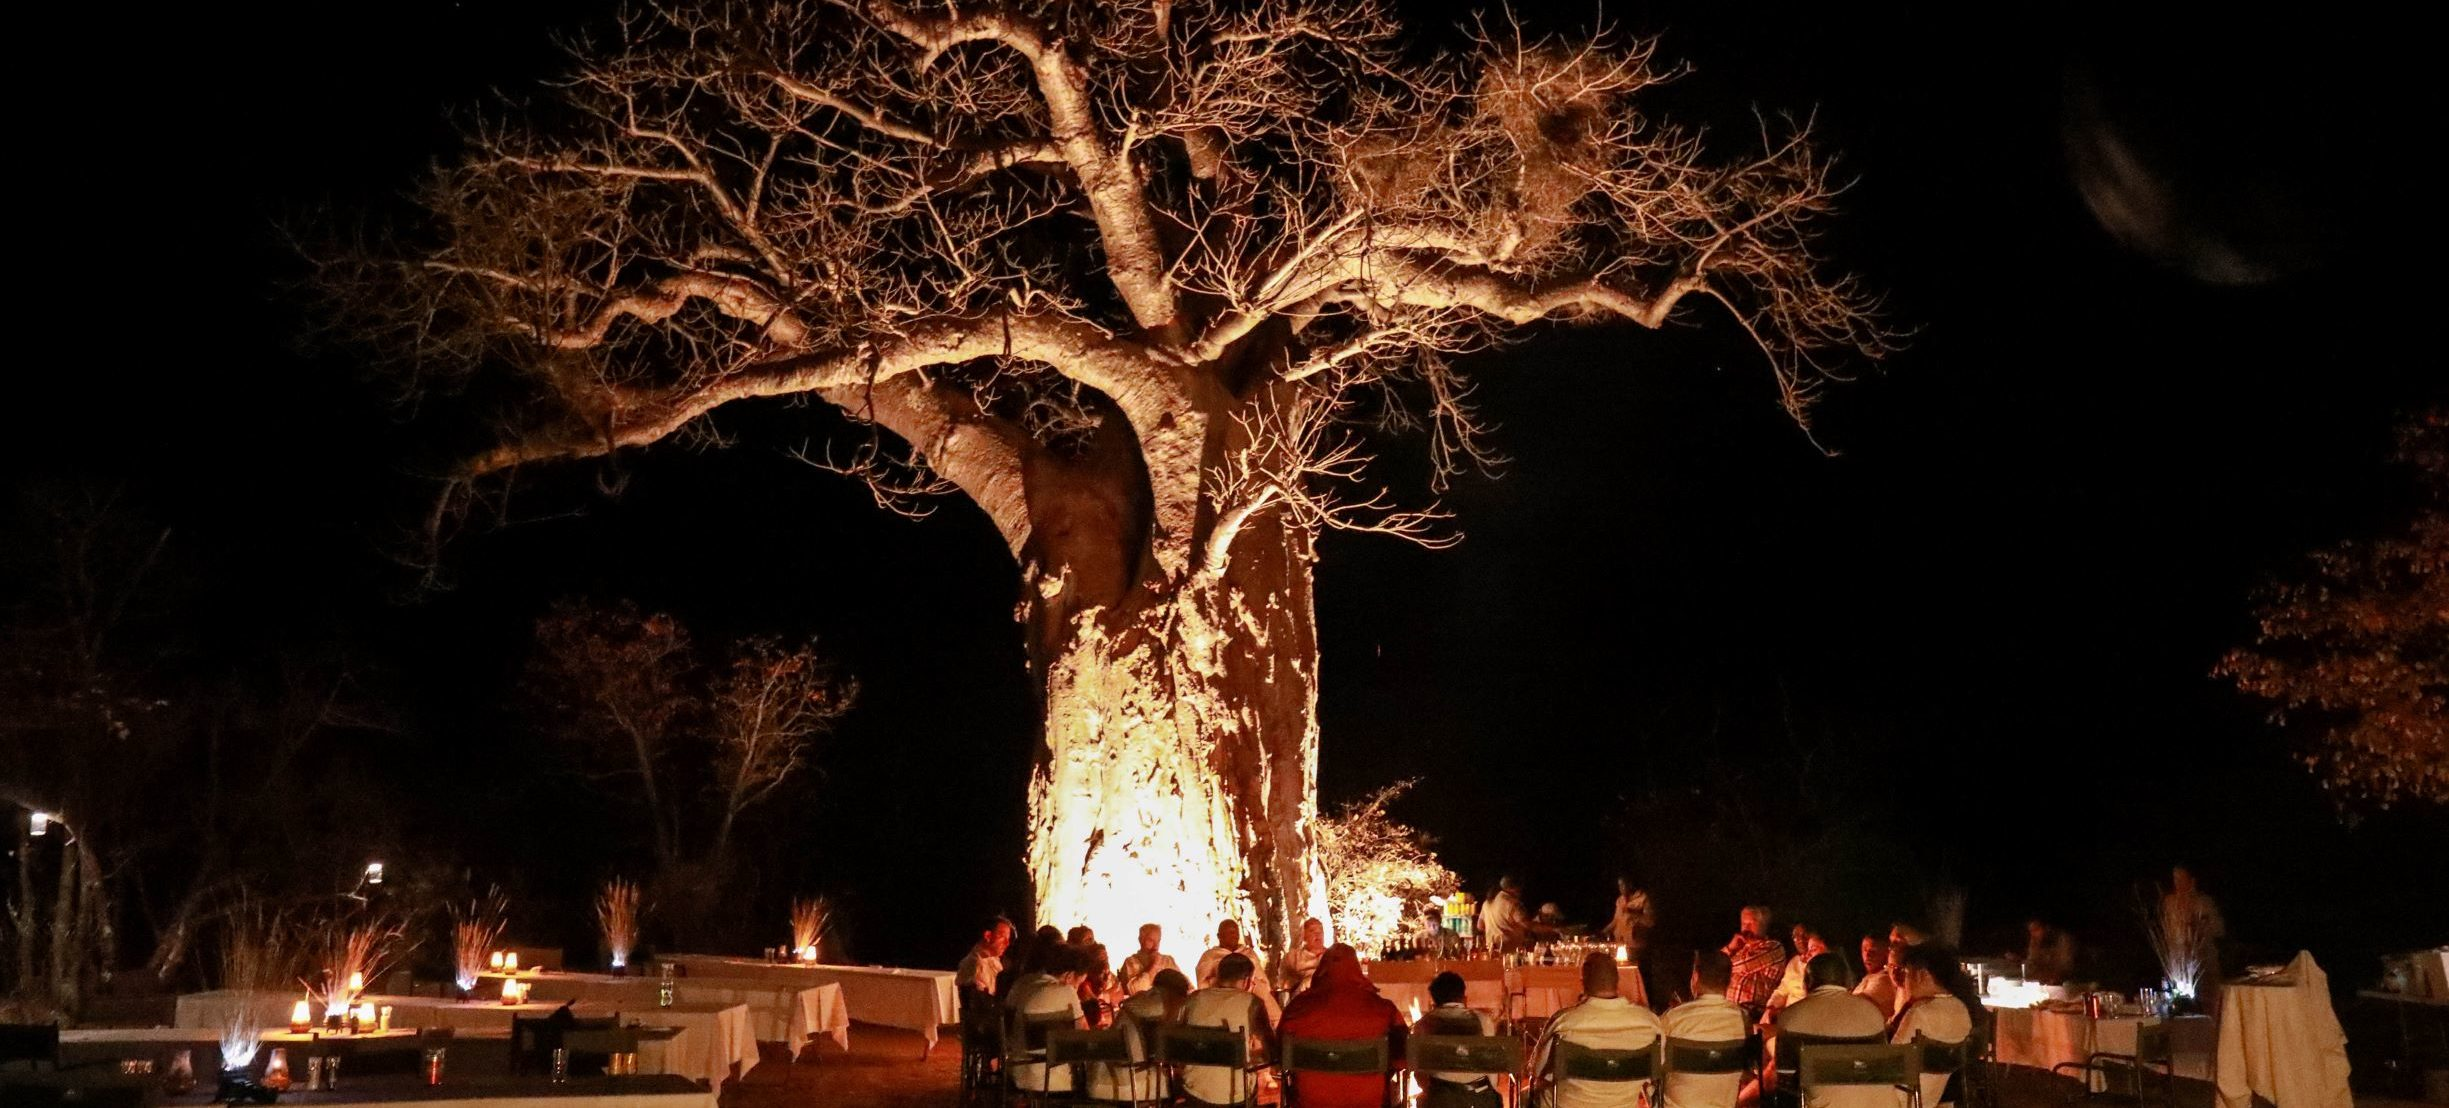 baum-lagerfeuer-abend-fire-africa-diamant-reise-afrika